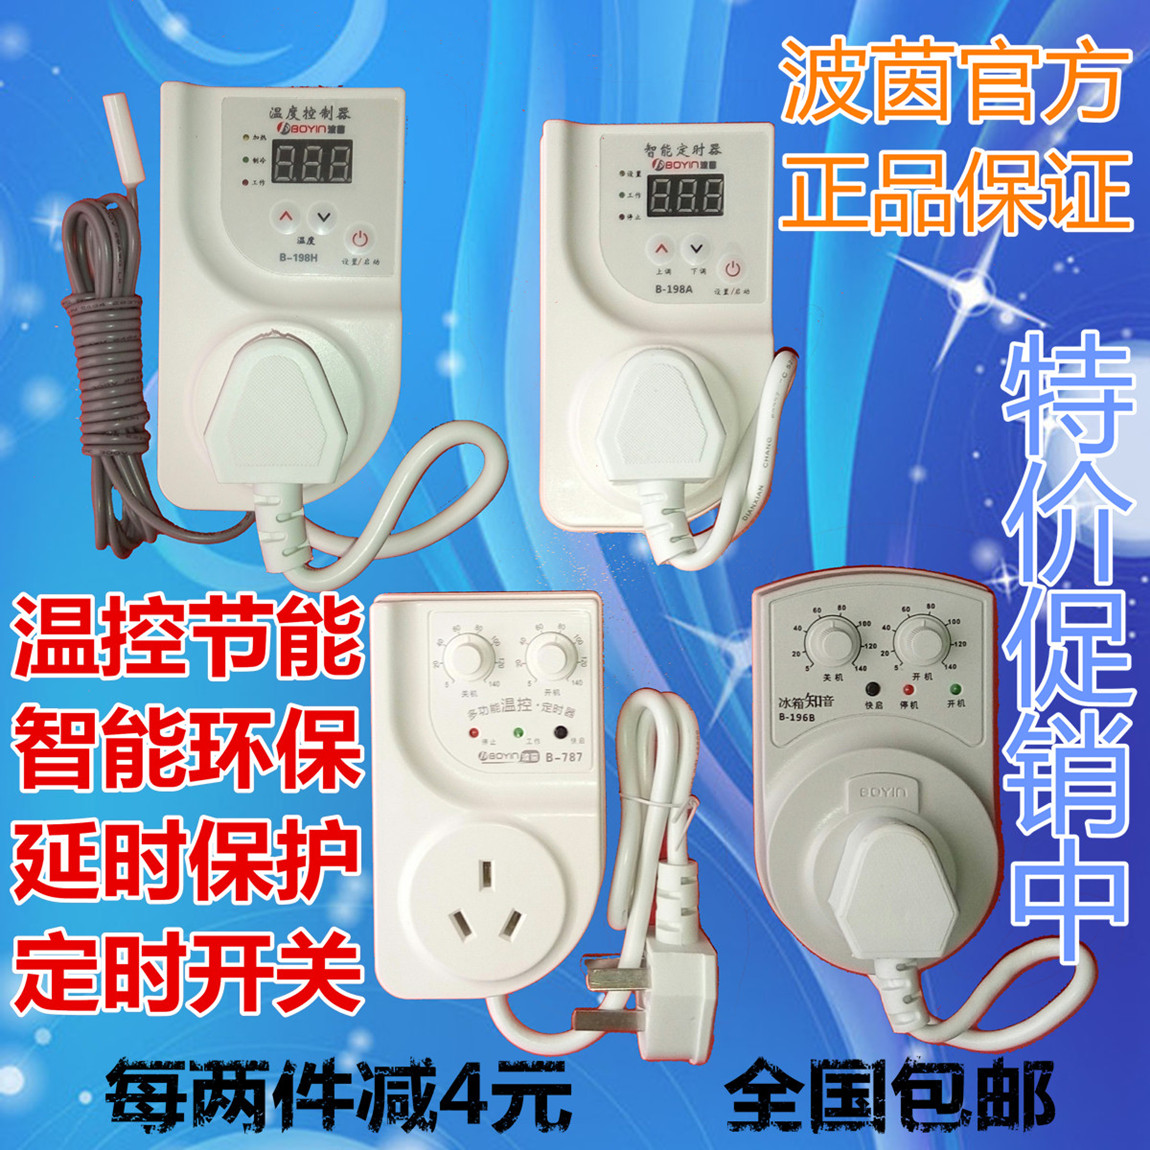 Usd 647 Wave Wing Refrigerator Companion Electronic Appliance Protector Thermostat Timer Delay Energy Saving Switch